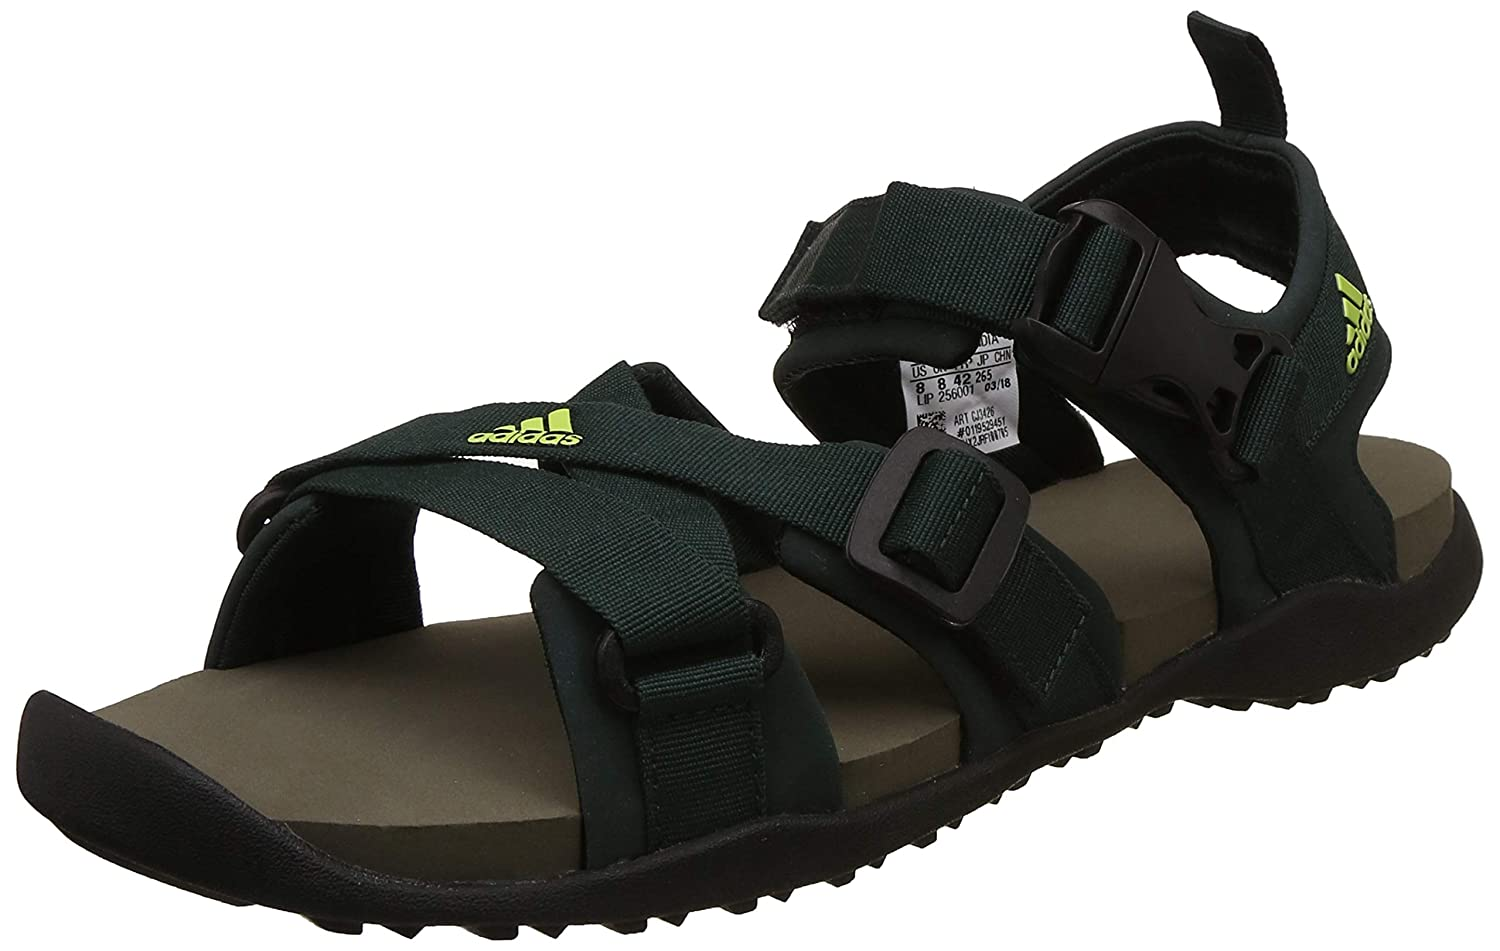 2a545d82b0de47 Adidas Men's Gladi M Grnnit/Syello/Branch Sandals-11 UK/India (46 1/9 EU)  (CJ3426): Buy Online at Low Prices in India - Amazon.in